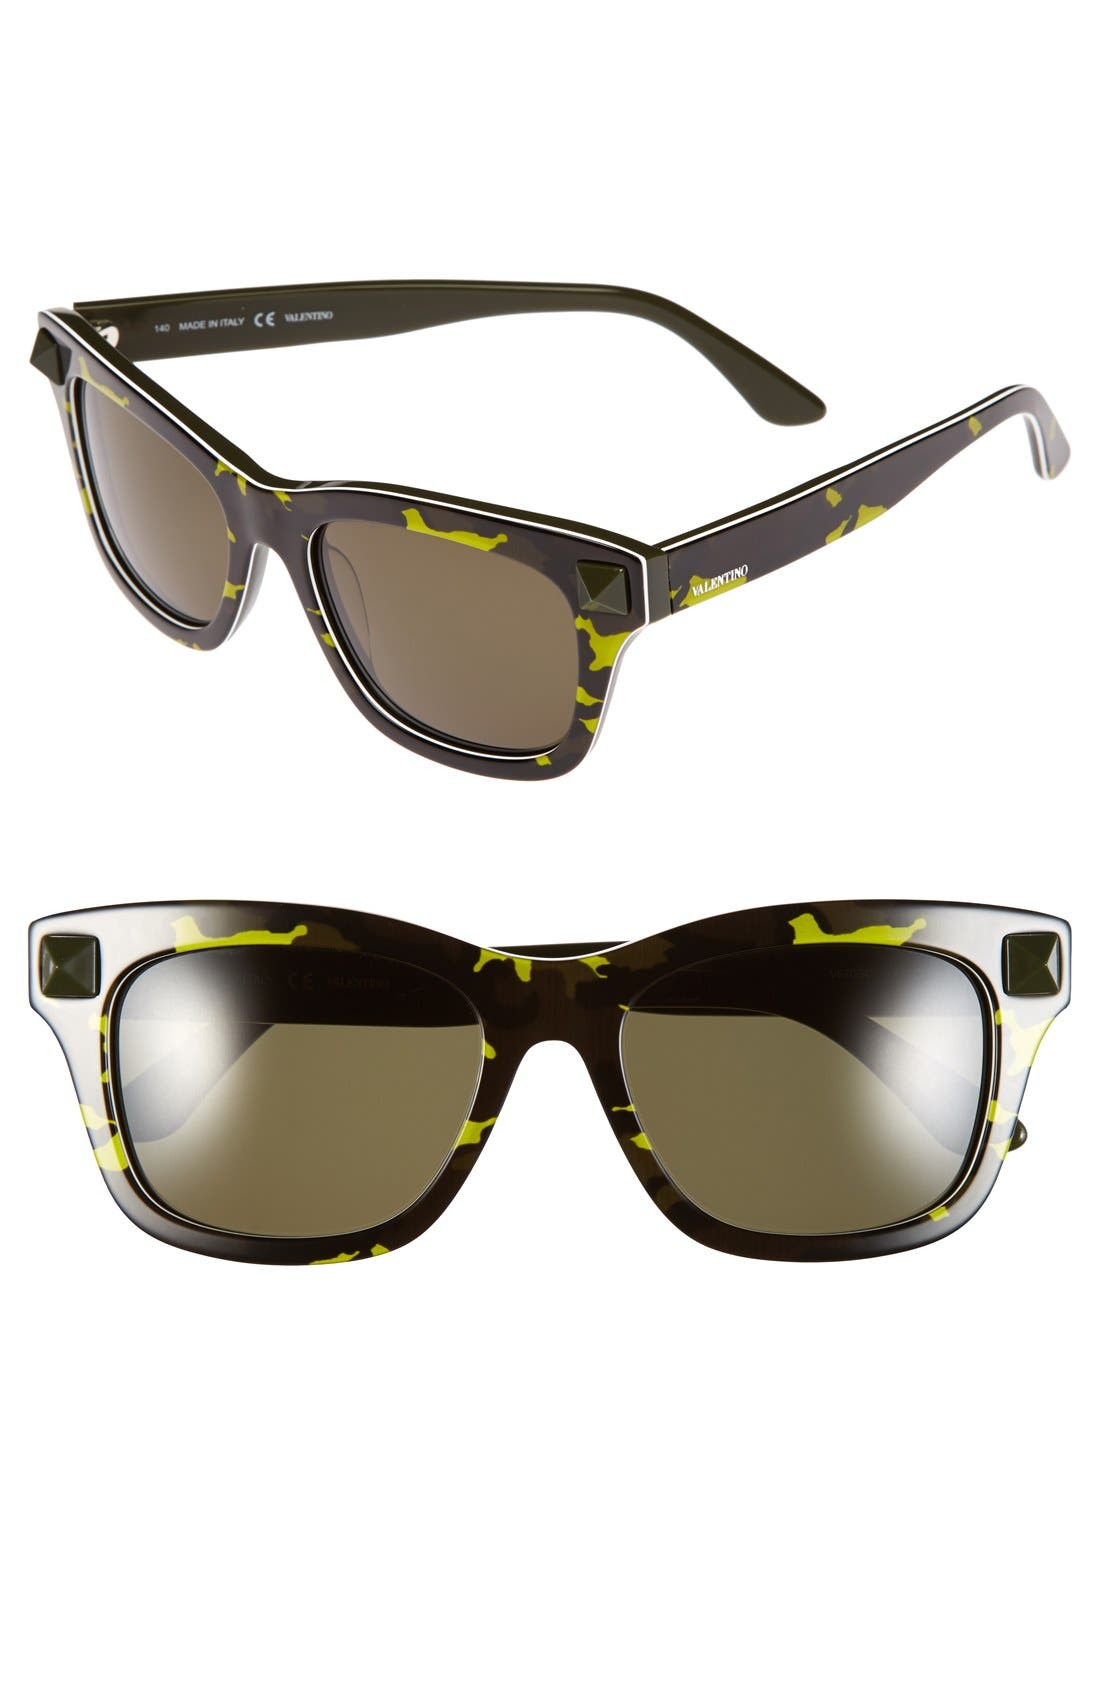 Alternate Image 1 Selected - Valentino 'Rockstud' 53mm Retro Sunglasses